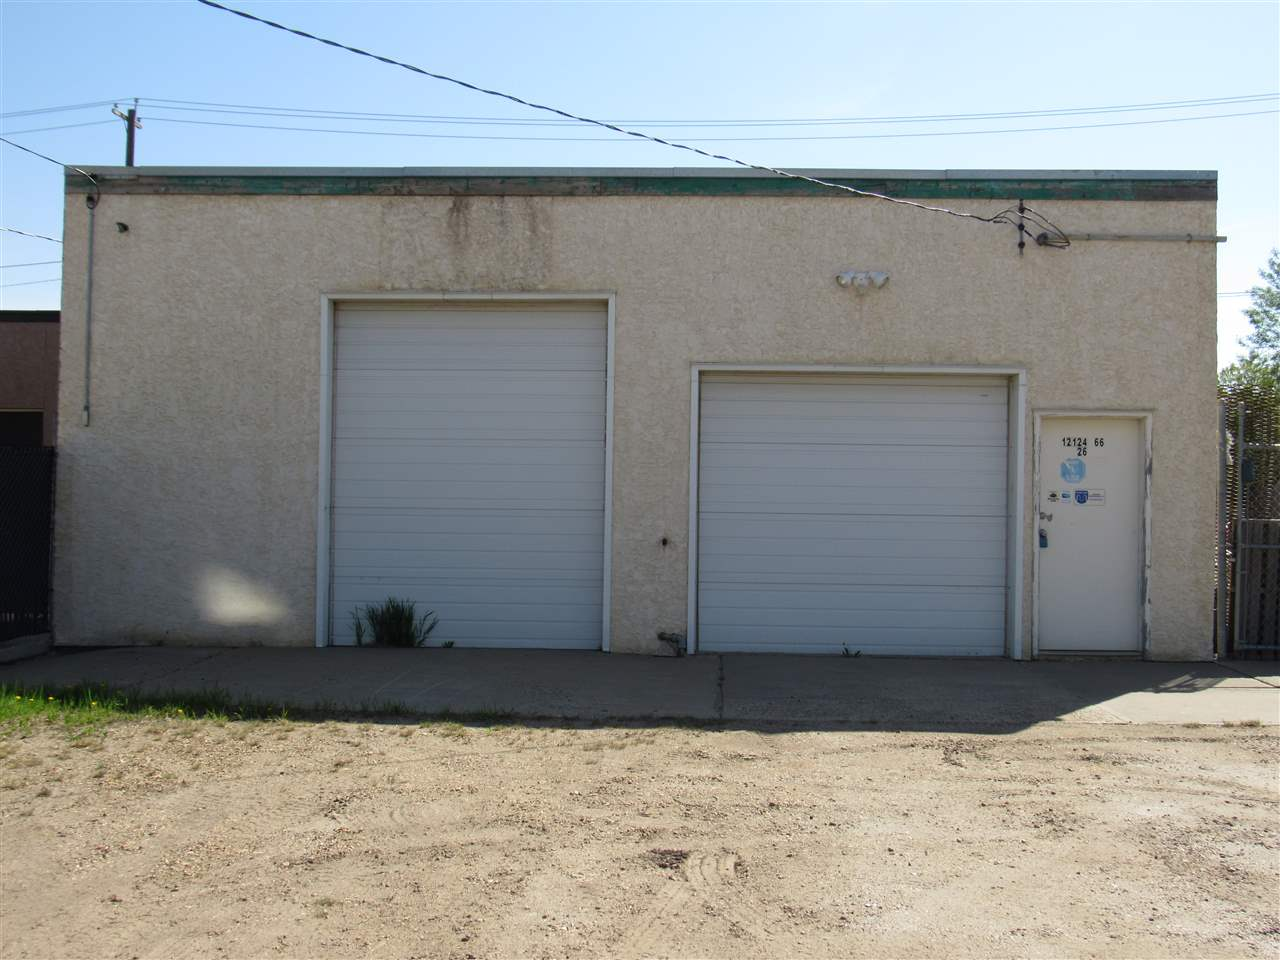 """COMMERCIAL ZONE  """"CB1"""" .  Street front  on 66 Street  location and just 1 minute to Yellowhead Freeway.  Free Standing Building approx. 2640 square ft..   Property has  Parking at front on 66 street and additional parking at the  rear.   2 Doors 10ft high and 9 ft high . ceiling height is 12 ft.  Ample power, 2 bathrooms , lunch room 4 offices, air condition..   GROSS LEASE  Rent is $2,900.00 per month.  Tenant pays utilities and all tenant license and business tax etc.   Past Tenant was an Air-condition and plumbing Company so is basically clean .  Also good for Auto or Service business , Shop,  Clubs, Convenience Store , Liquor , , etc...   The Shop area is 45 ft long could be made  bigger by removing some of the office / retail area in front area.  Lot is 33x 126 ft  Building is 80 ft long- . The Front of building will be painted , in good weather.   Additional fenced yard  33x126 ft. could be rented also ( price to be negotiated)  Also FOR SALE $649,900..00 listing #e4099817"""